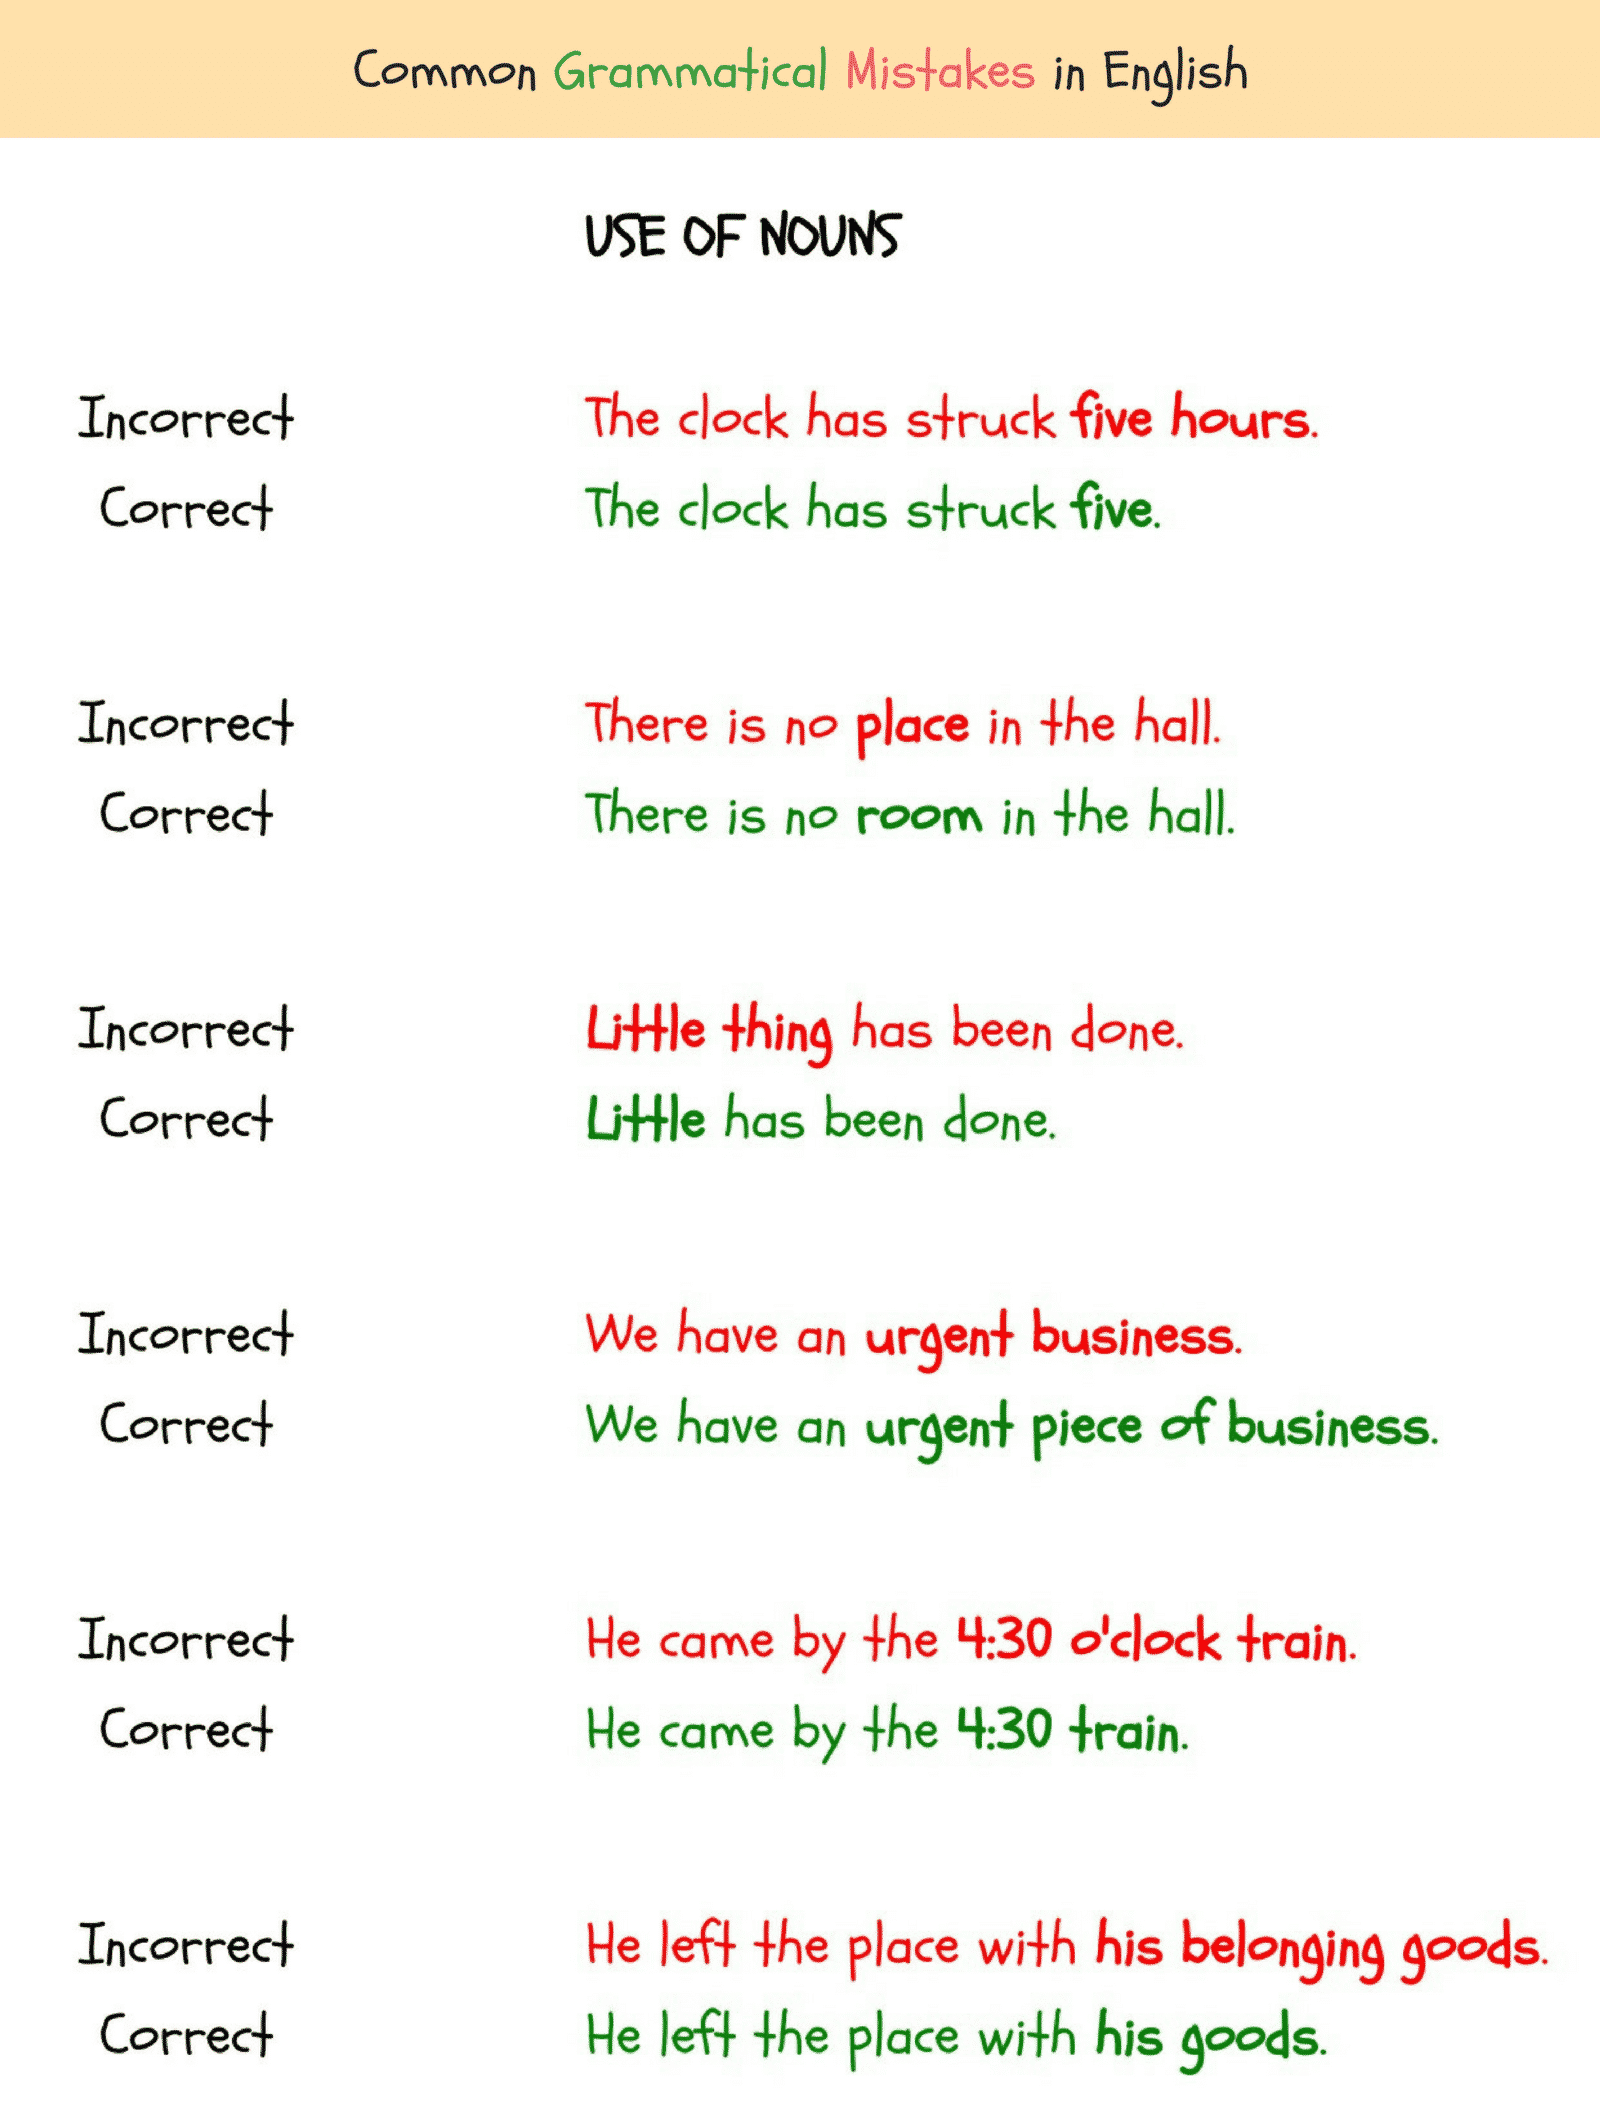 Common Grammatical Mistakes in English